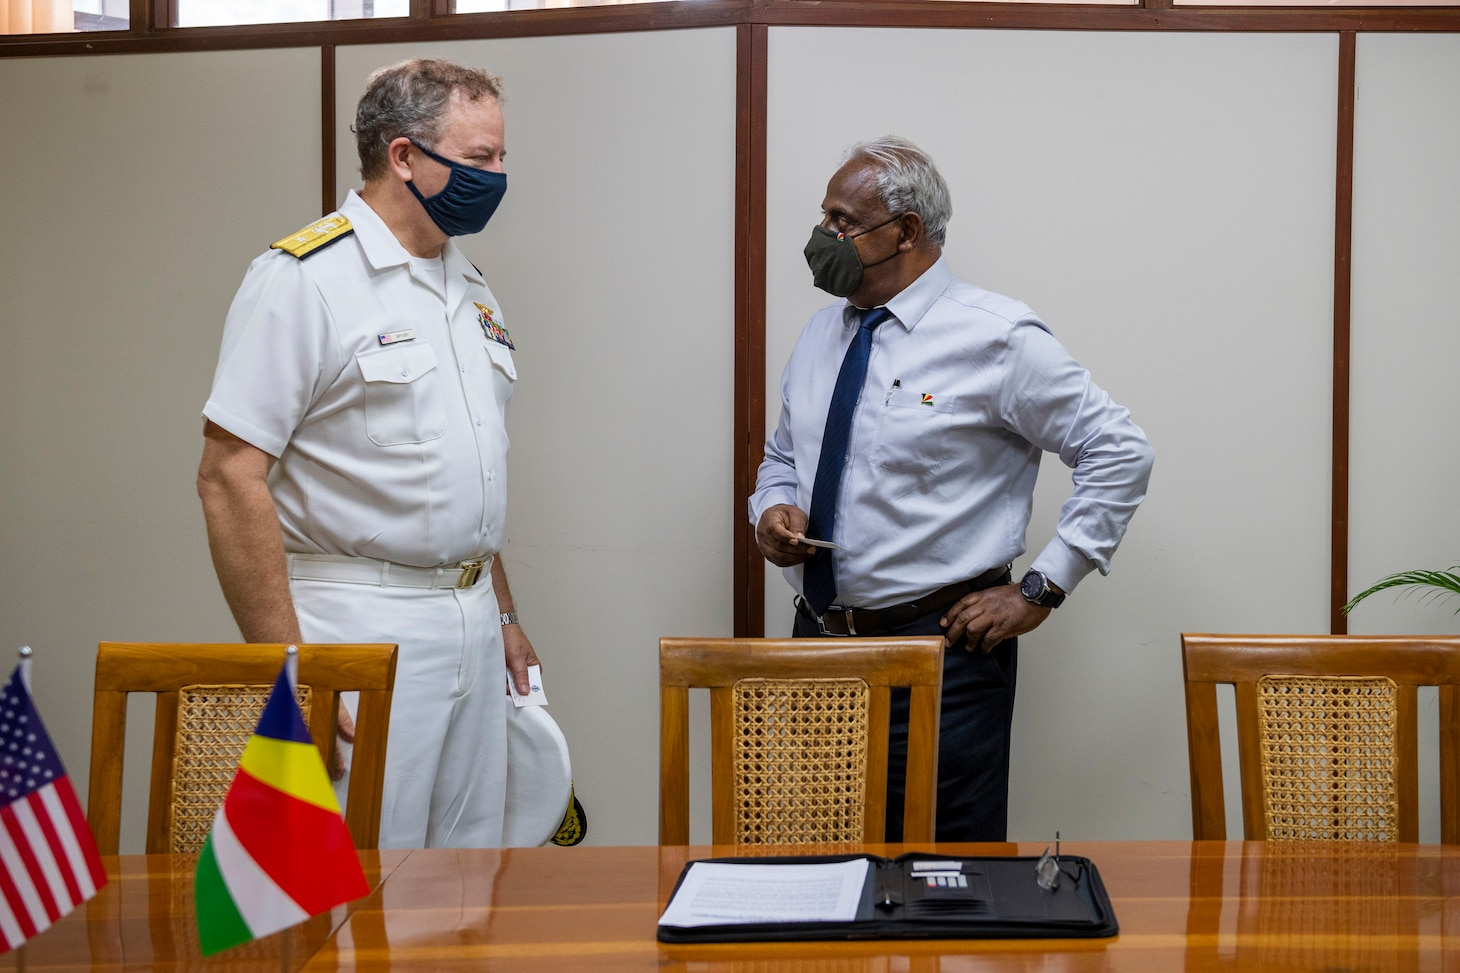 (July 27, 2021) Rear Adm. Jeffrey Spivey, director, Maritime Partnership Program, U.S Naval Forces Europe-Africa, left, and Seychelles Minister for Internal Affairs, Errol Fonseka, talk during the official signing of the bilateral agreement between the United States and Seychellois Governments on Countering Illicit Transnational Maritime Activity Operations in conjunction with exercise Cutlass Express 21, July 27, 2021 at the Independence House Annex in Seychelles. This is the first bilateral maritime Agreement between the United States and an East African country.